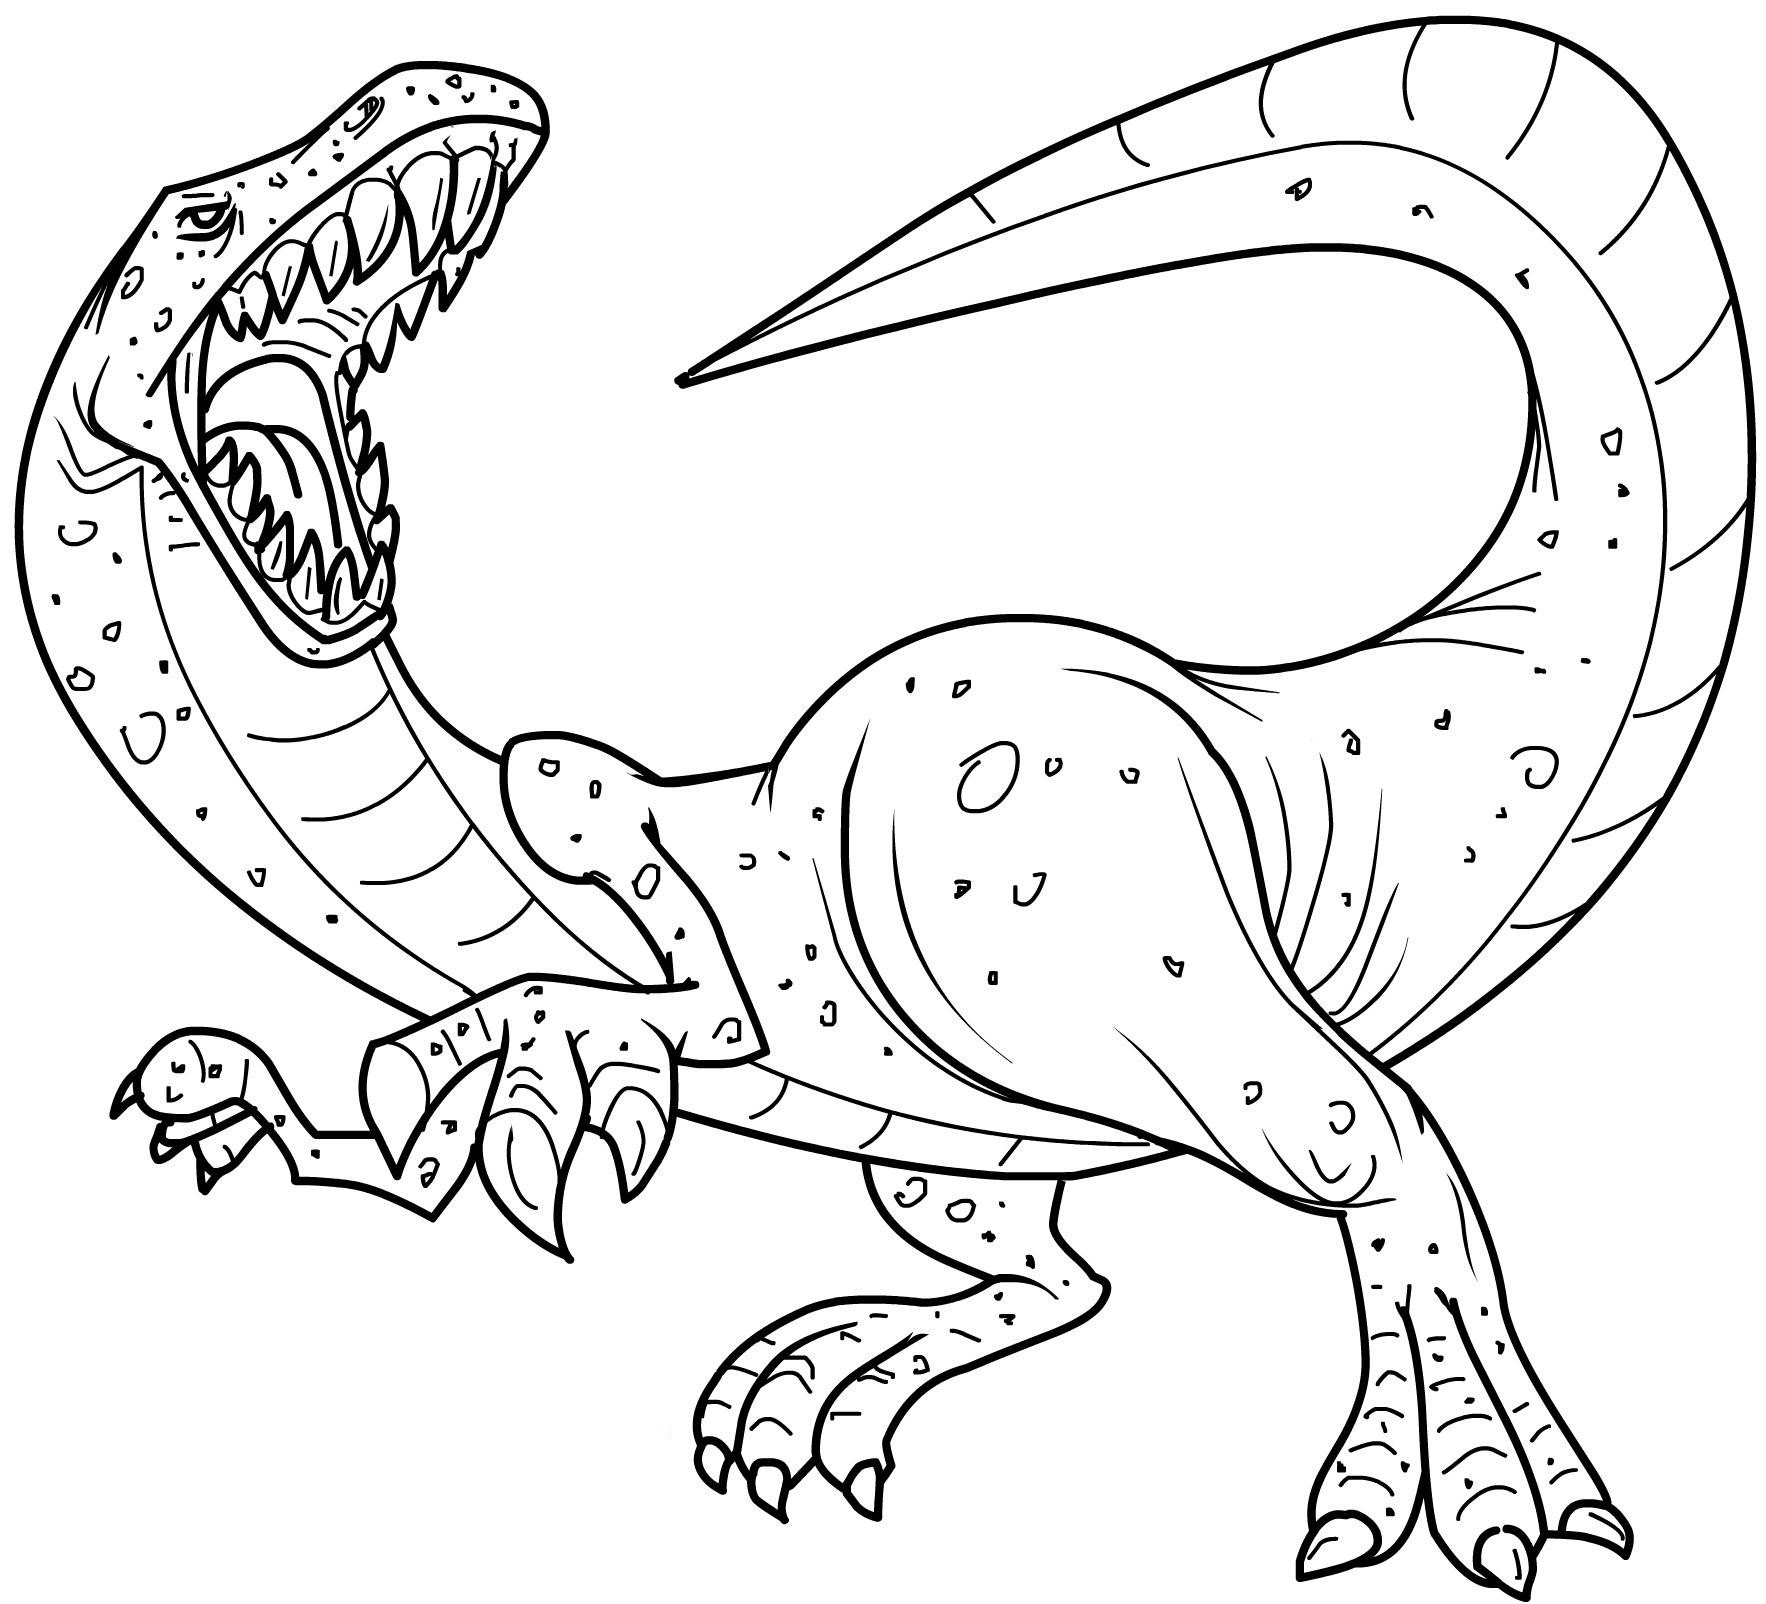 dinosaur free printable coloring pages coloring pages dinosaur free printable coloring pages printable coloring pages dinosaur free